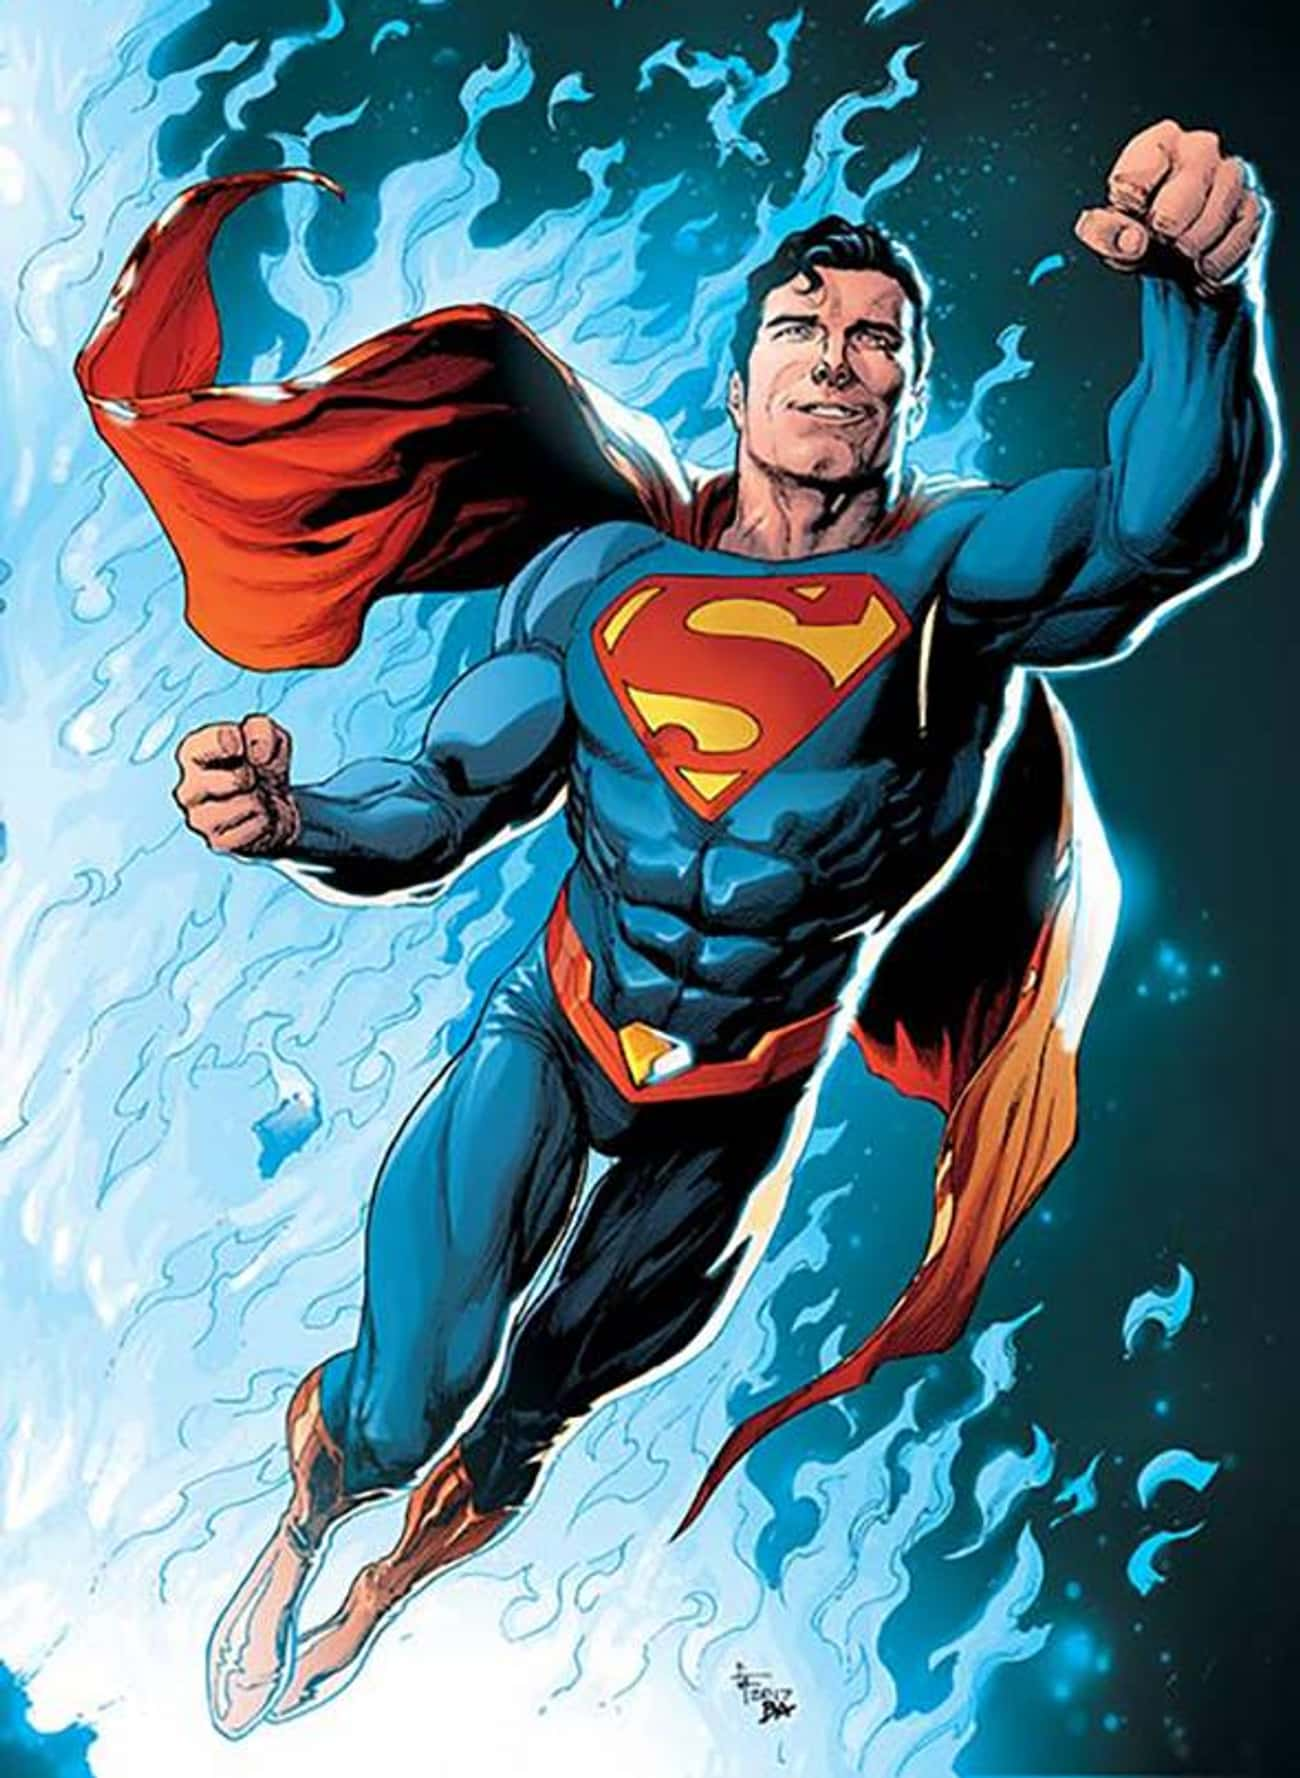 Superman Doesn't Fly, He Manipulates Gravity